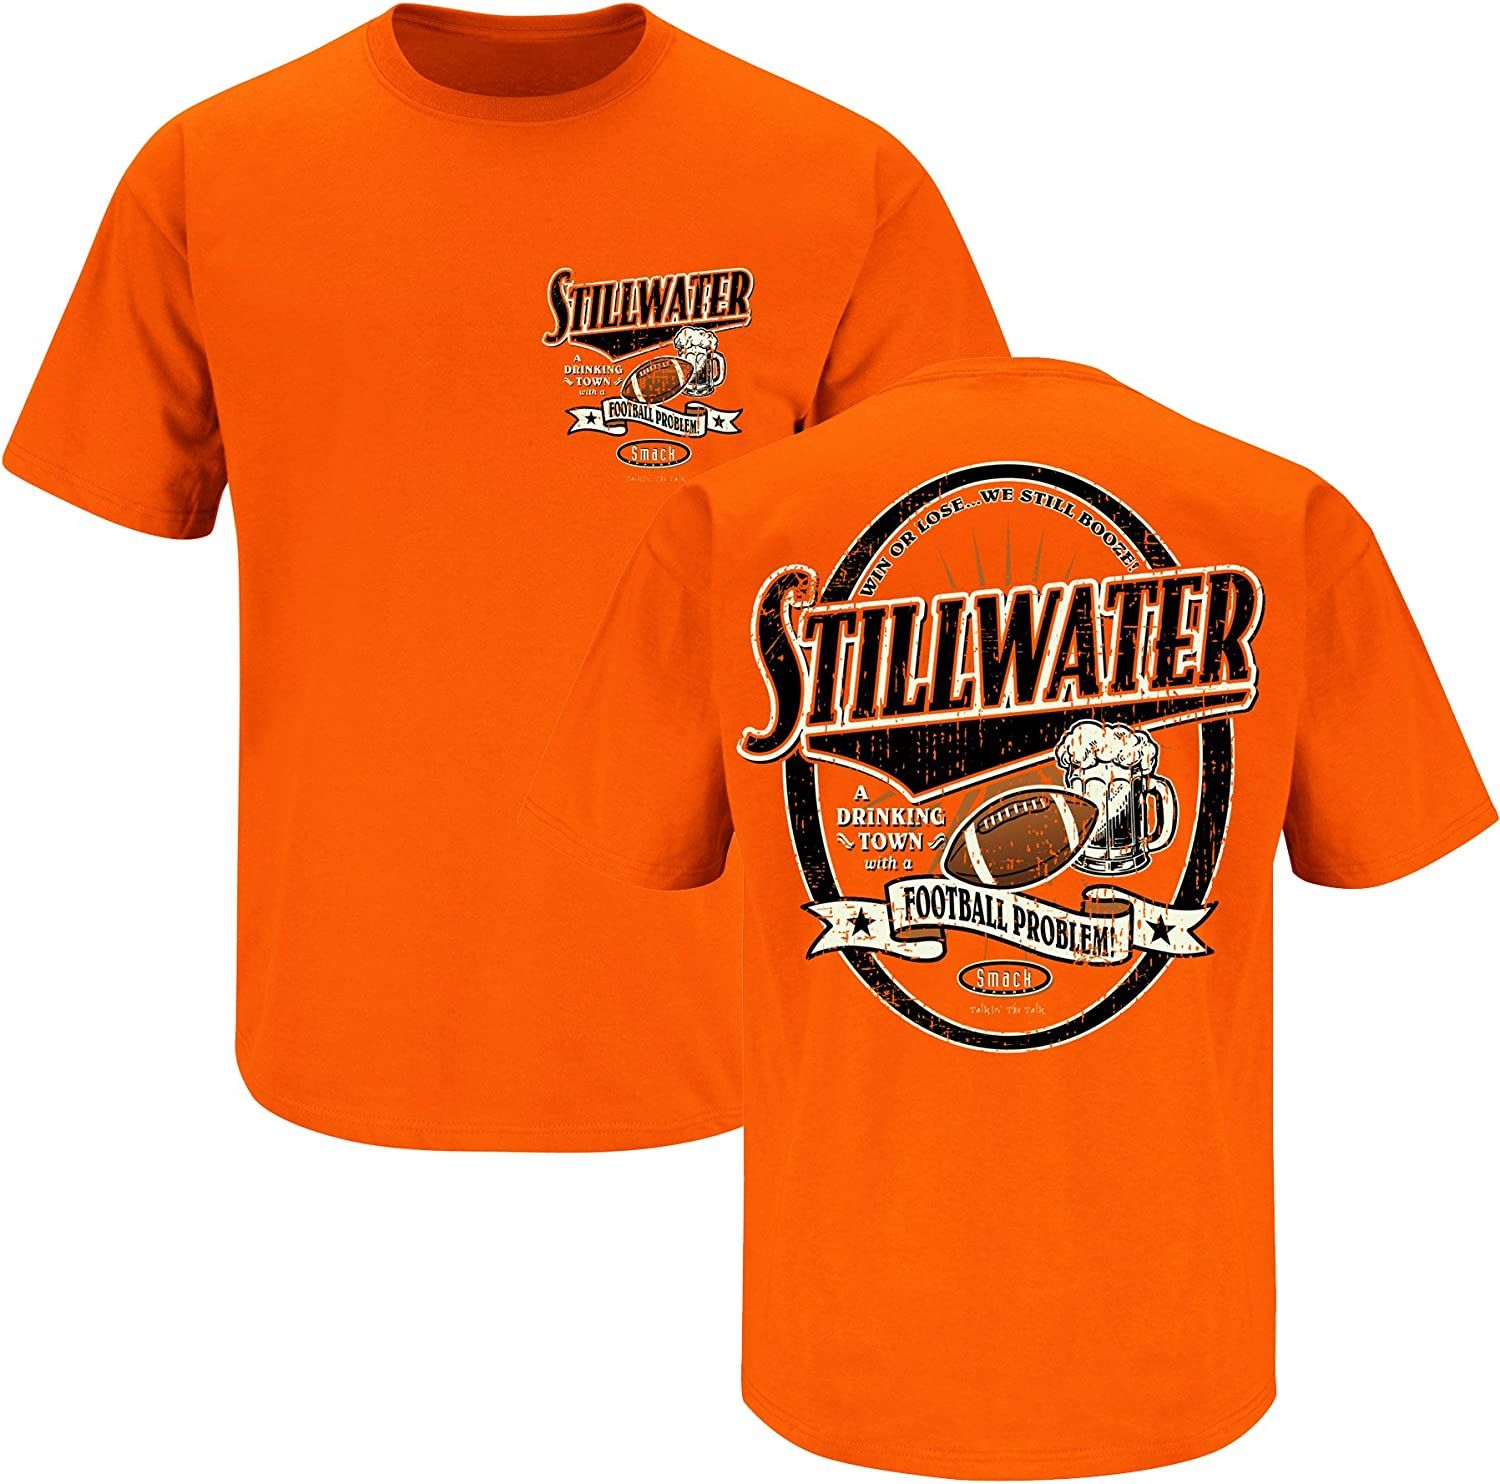 Stillwater Drinking Town Orange T-Shirt S-3X Smack Apparel Oklahoma State Football Fans